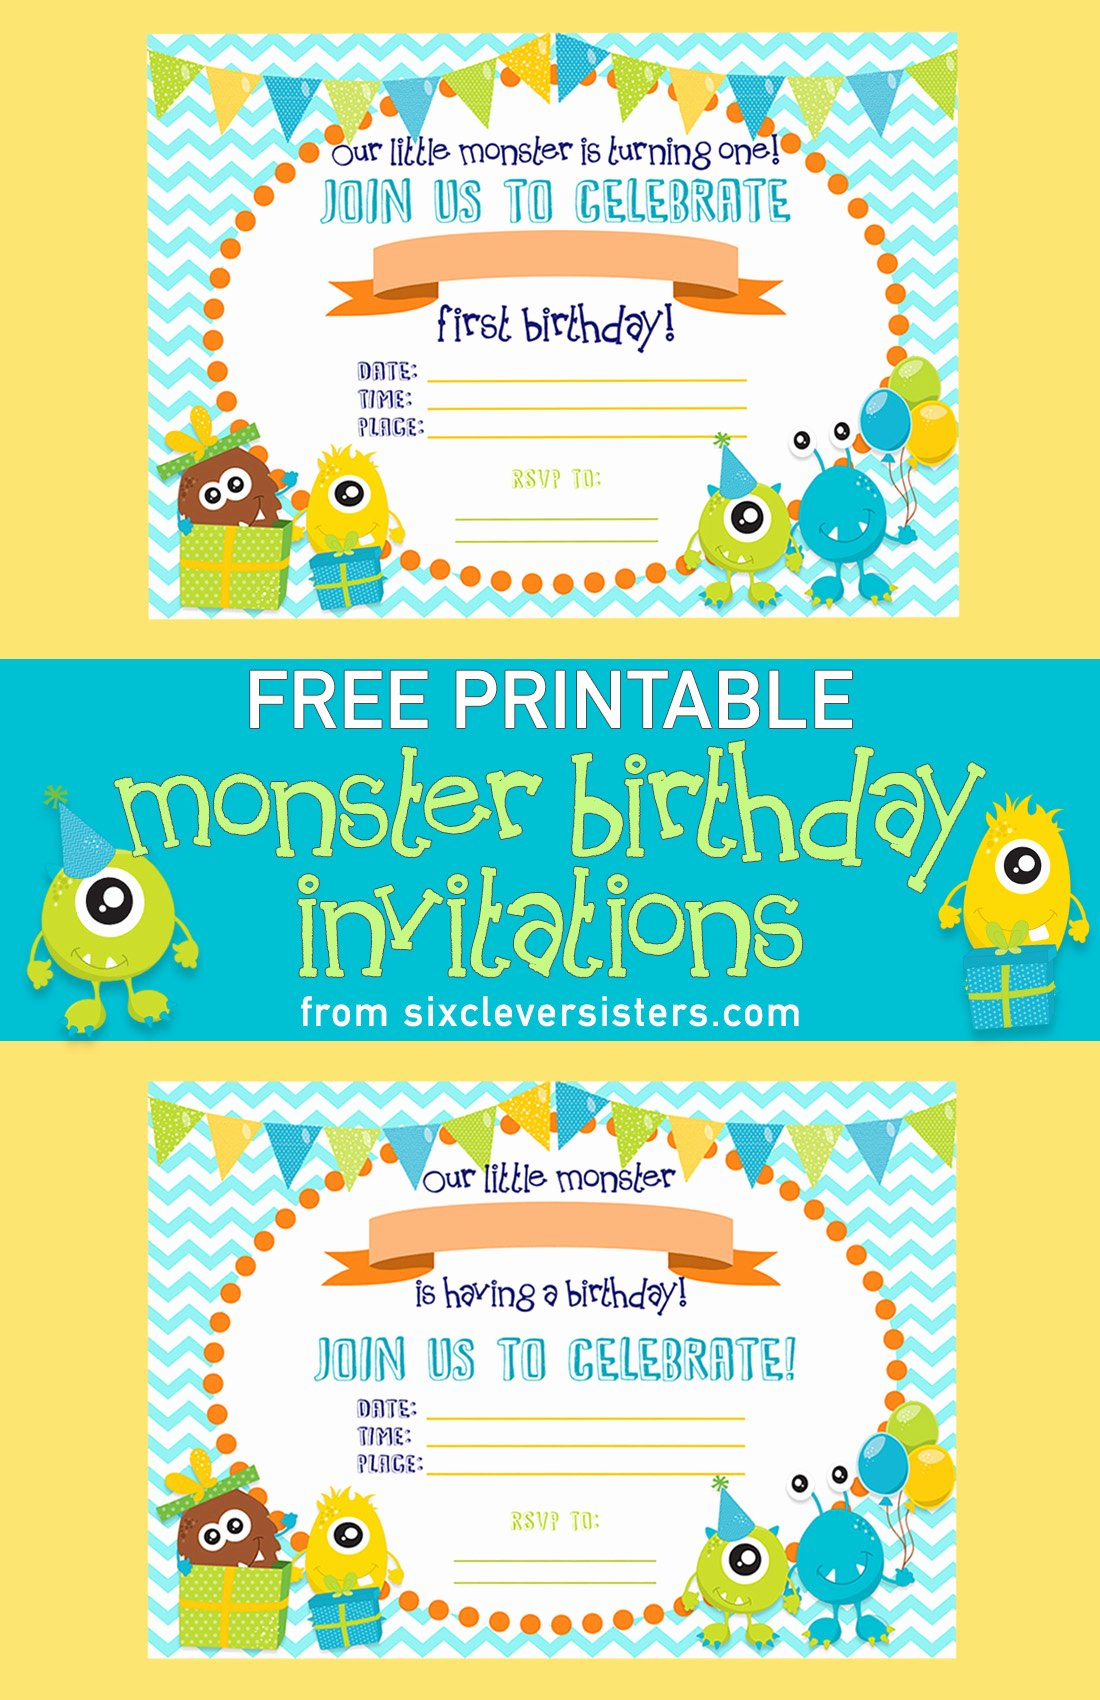 Free Printable Anniversary Invitations New Free Printable Monster Birthday Invitations Six Clever Sisters